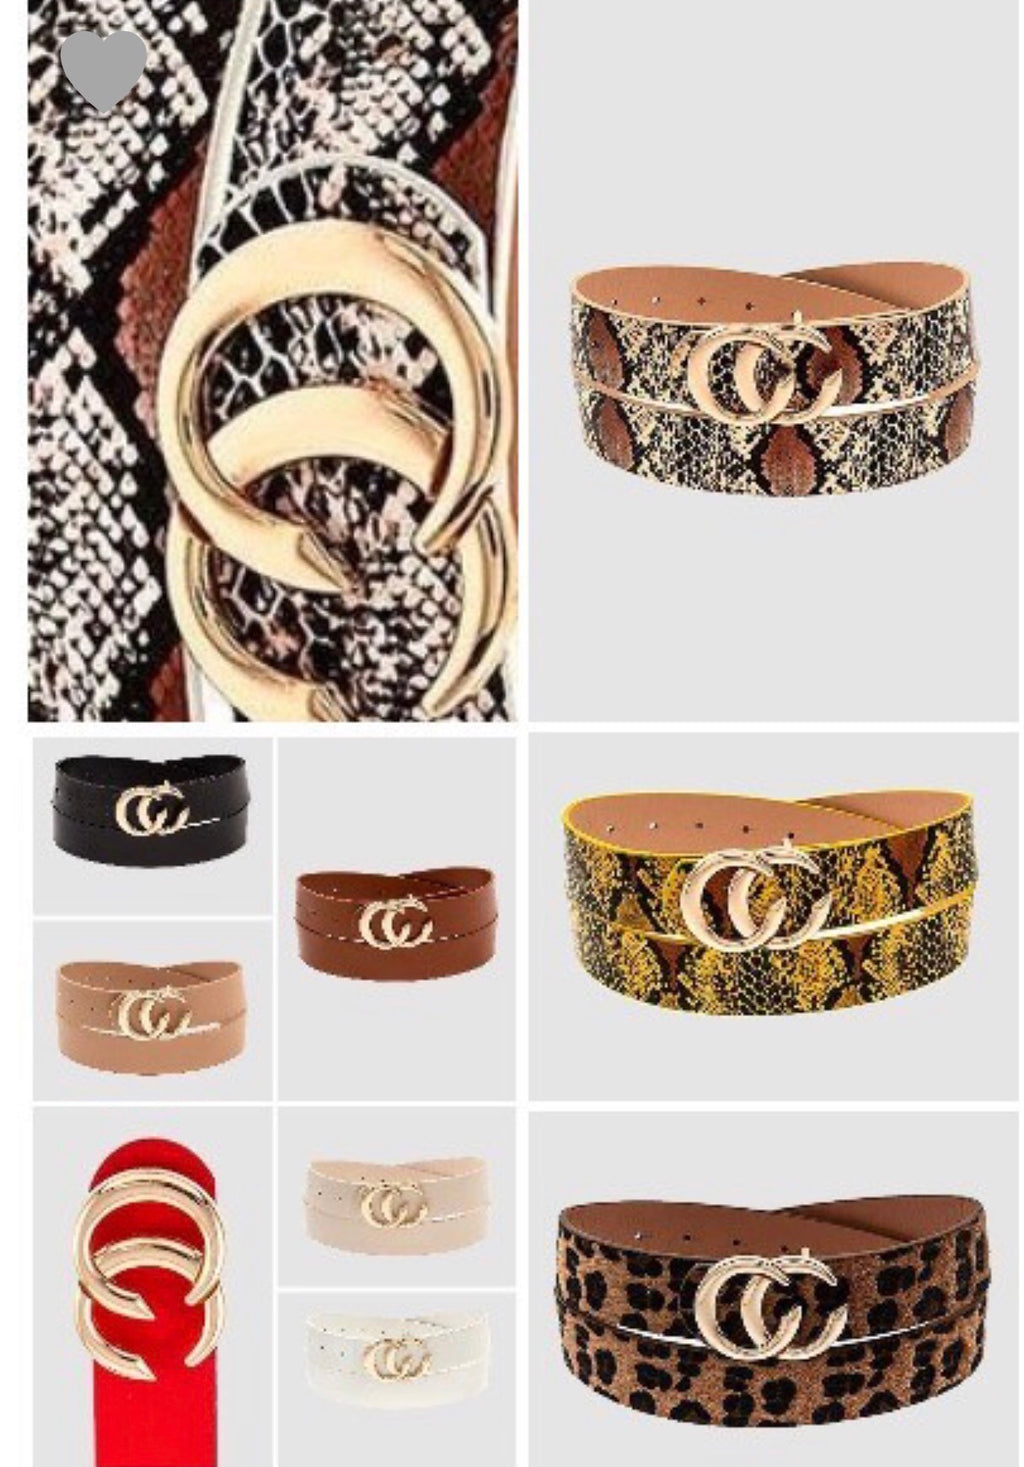 C&C Faux Belt - Forbidden Fruits Boutique